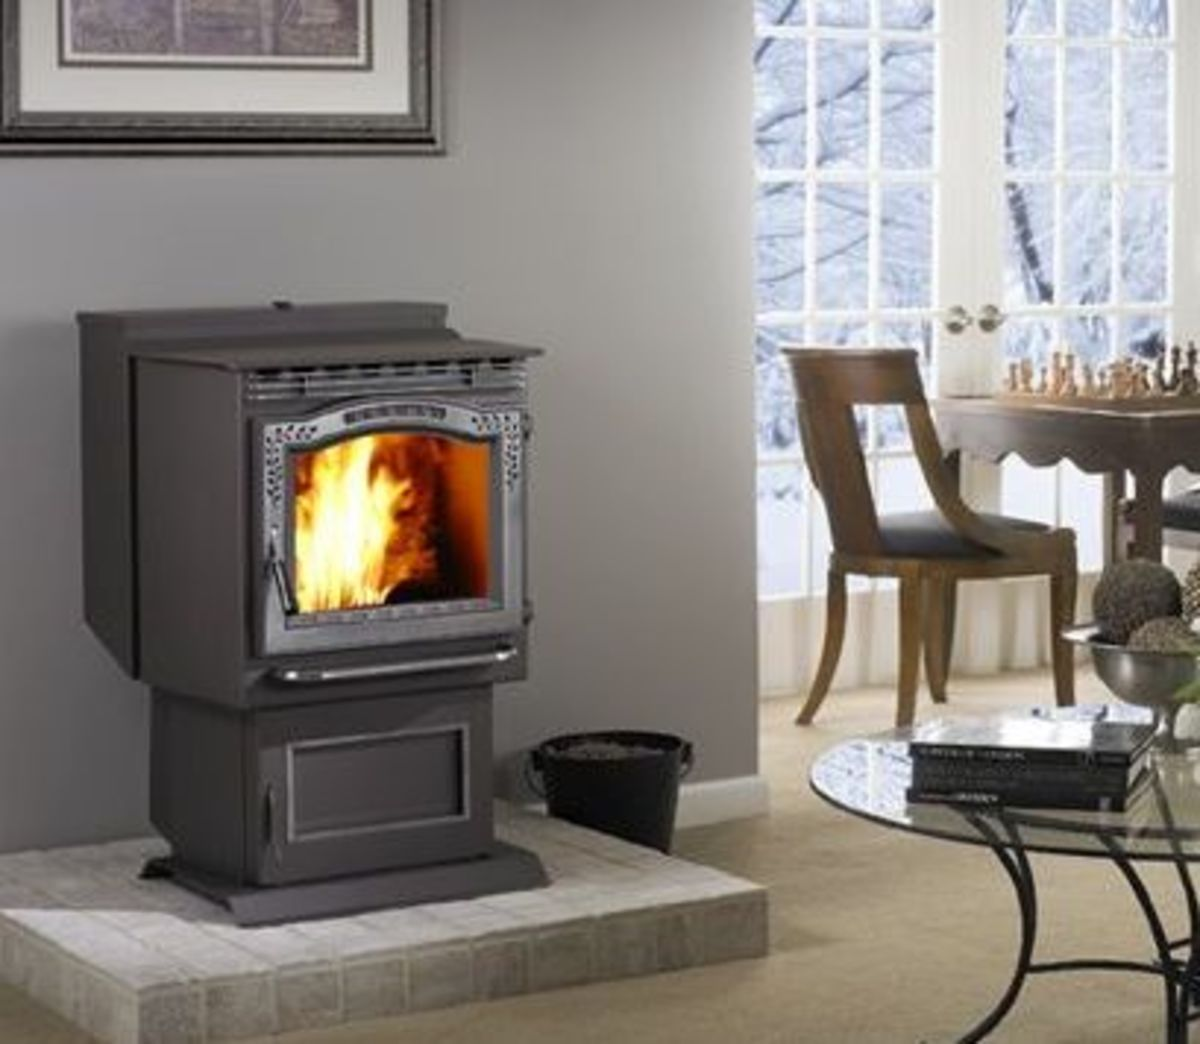 Also a Harman Stove, the P68 Pellet Stove can easily heat a 2,000+ sq.-ft. home with up to 68,000 BTUs of heat.